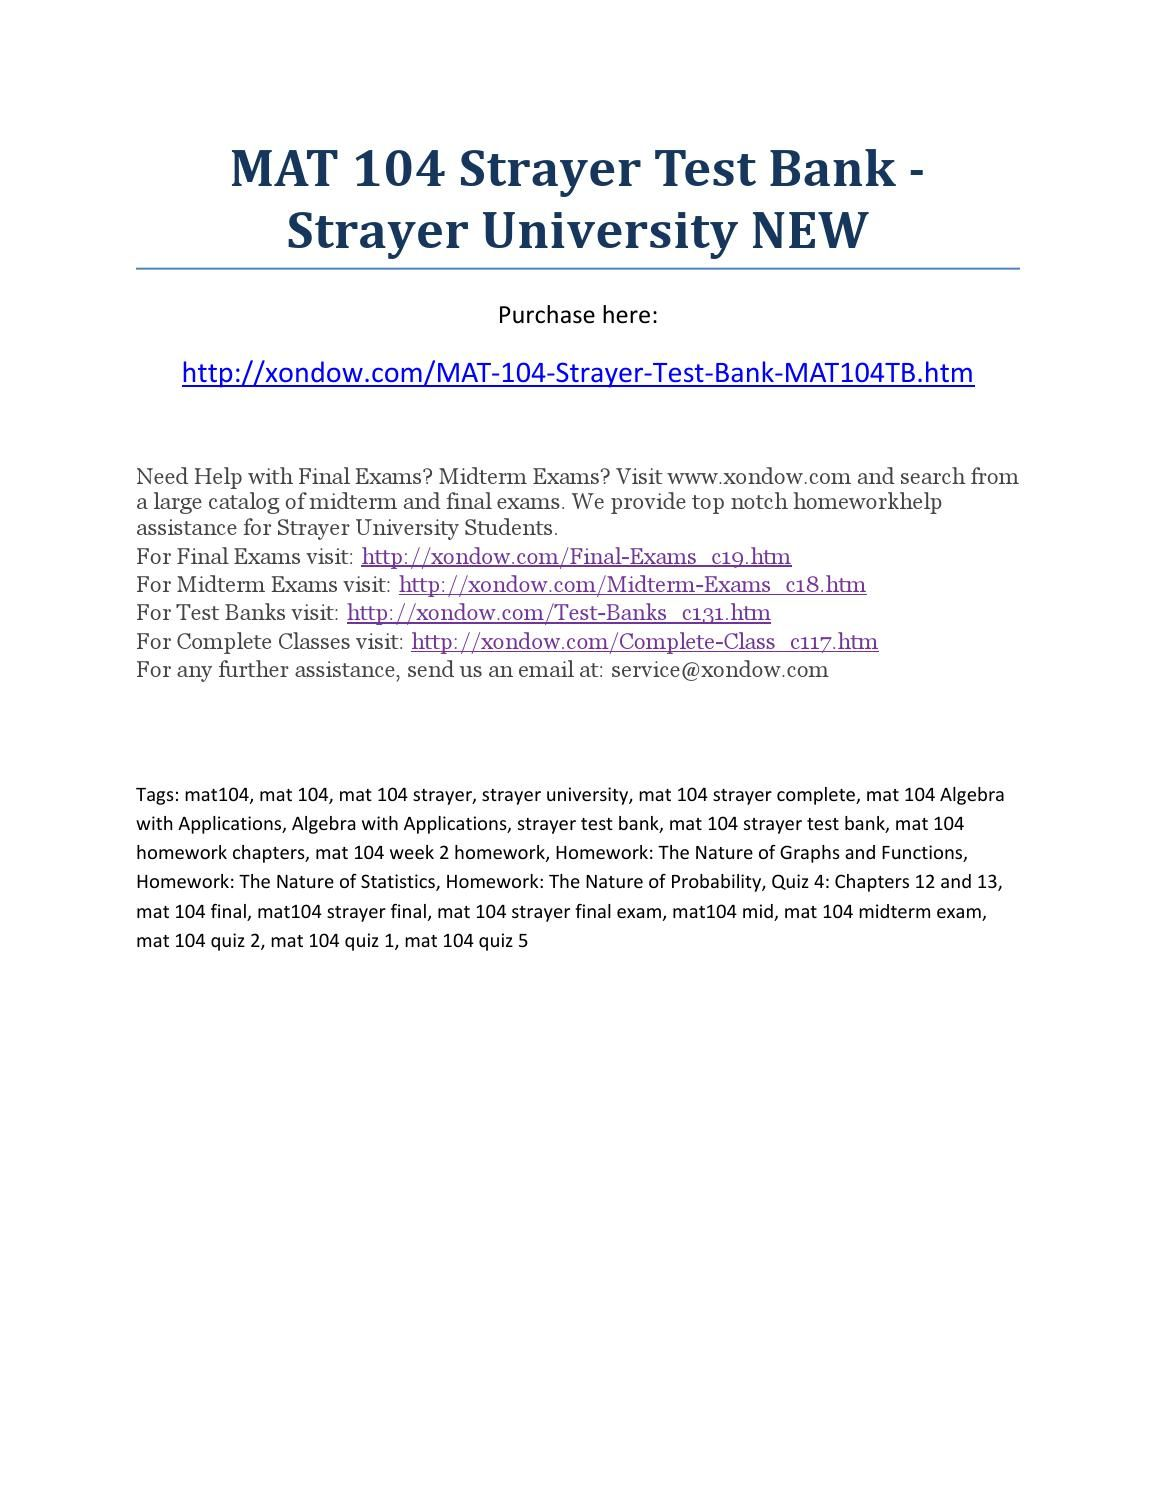 Mat 104 strayer all quizzes, midterm and final exams strayer